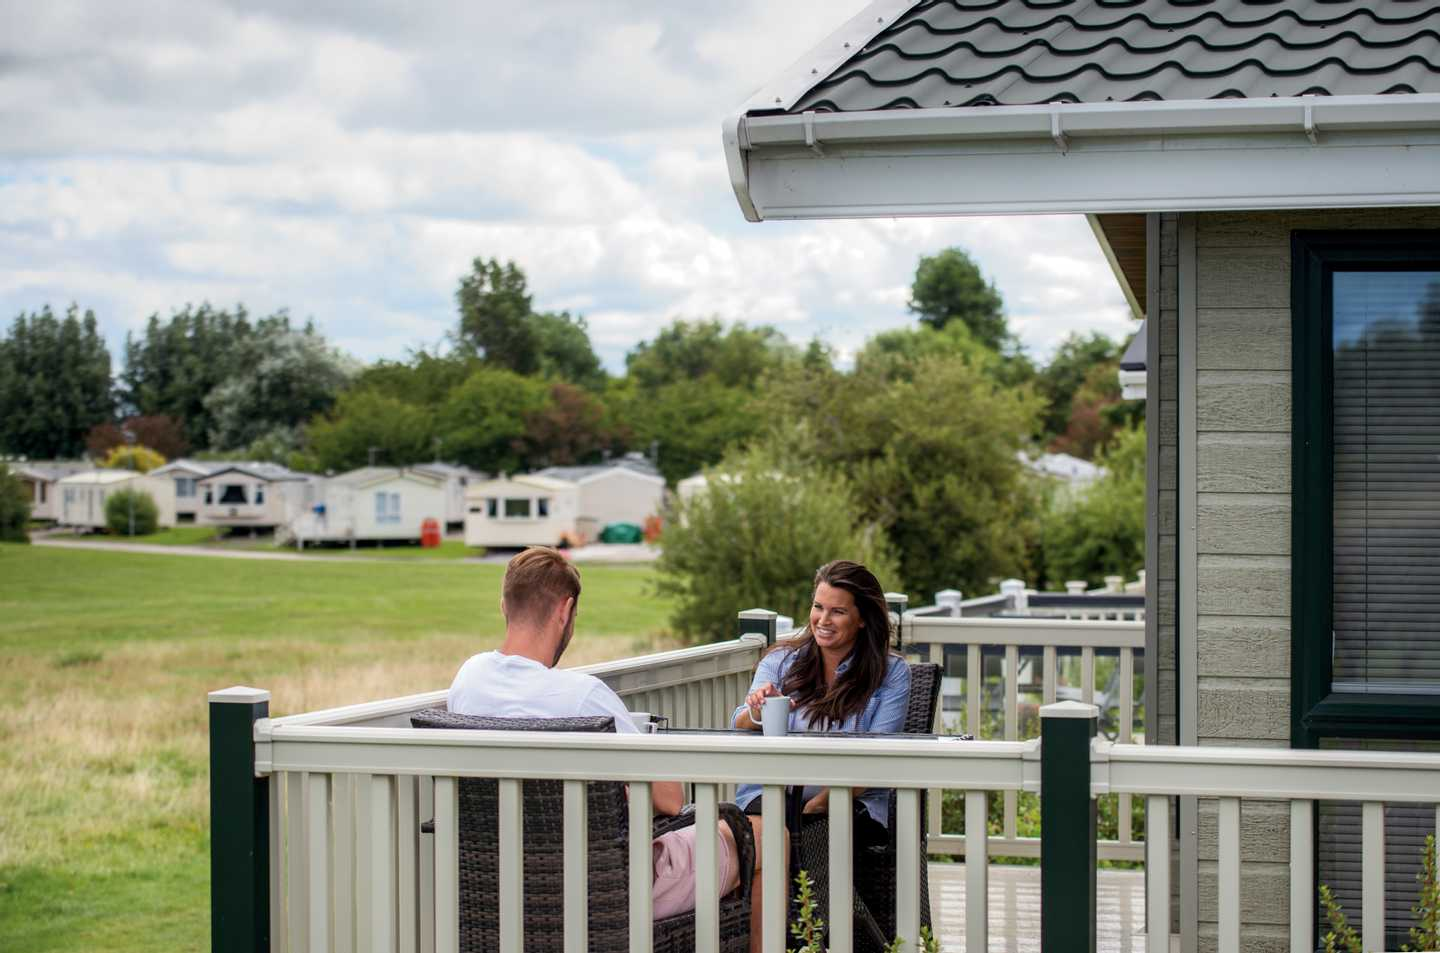 Holiday homes for sale at Marton Mere, Blackpool